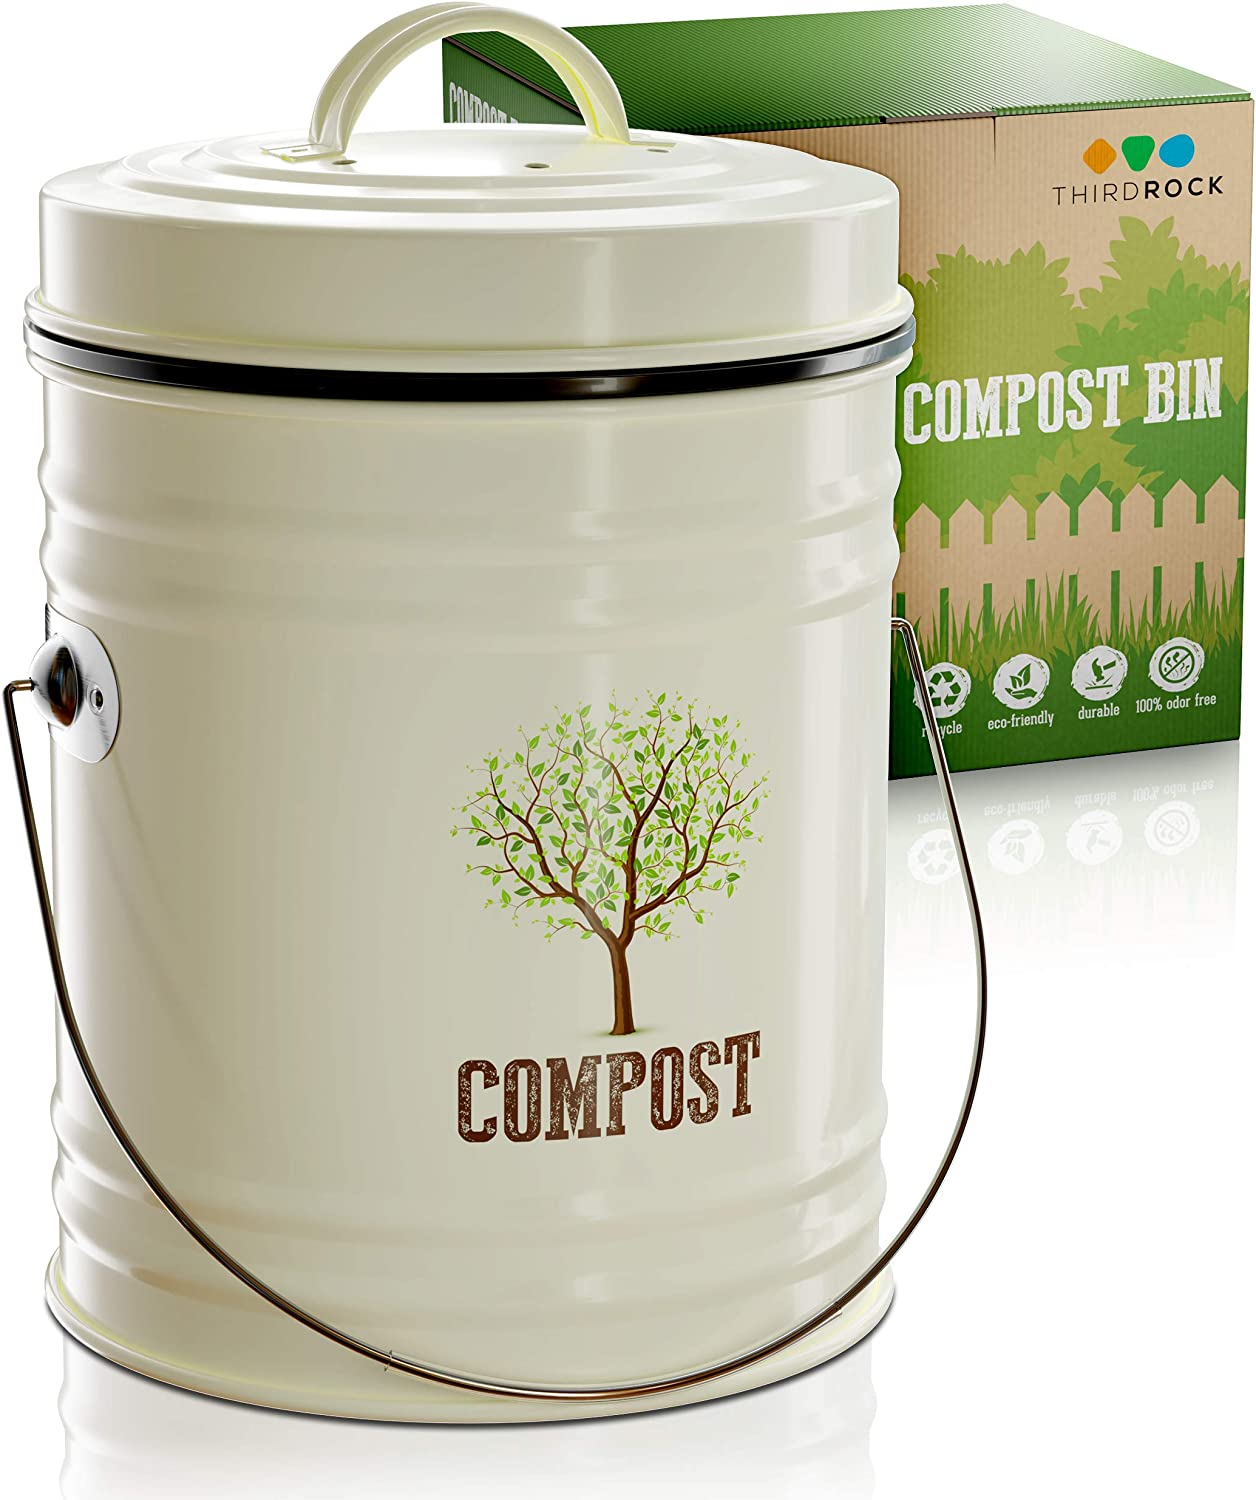 Third Rock Compost Bin for Kitchen Counter - 1.3 Gallon Compost Pail with Inner Compost Bucket Liner - Premium Dual Layer Powder Coated Carbon Steel Countertop Compost Bin - Includes Charcoal Filter